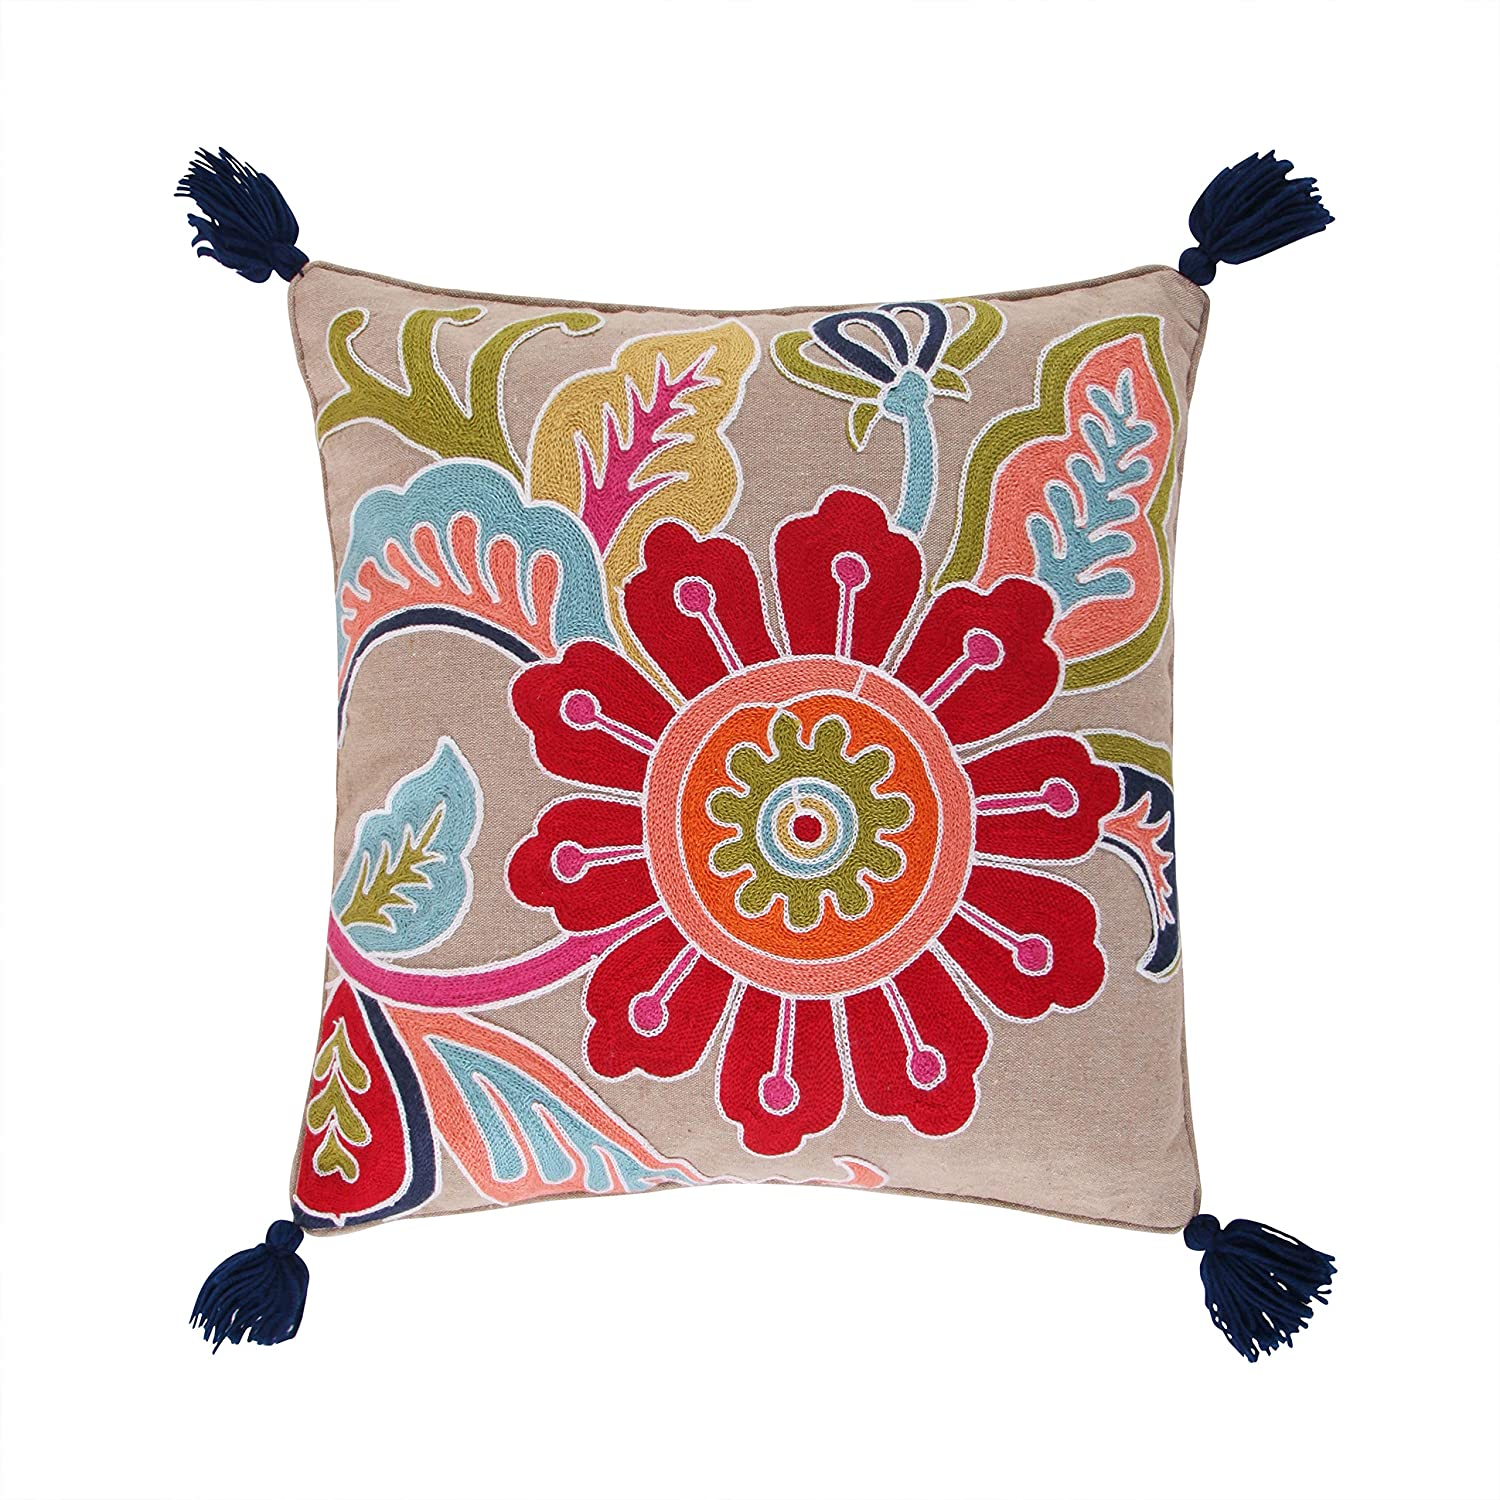 Levtex Home - Jules - Decorative Pillow (18x18 in.) - Crewel Flower - Orange, Yellow, Blue, Red, Teal